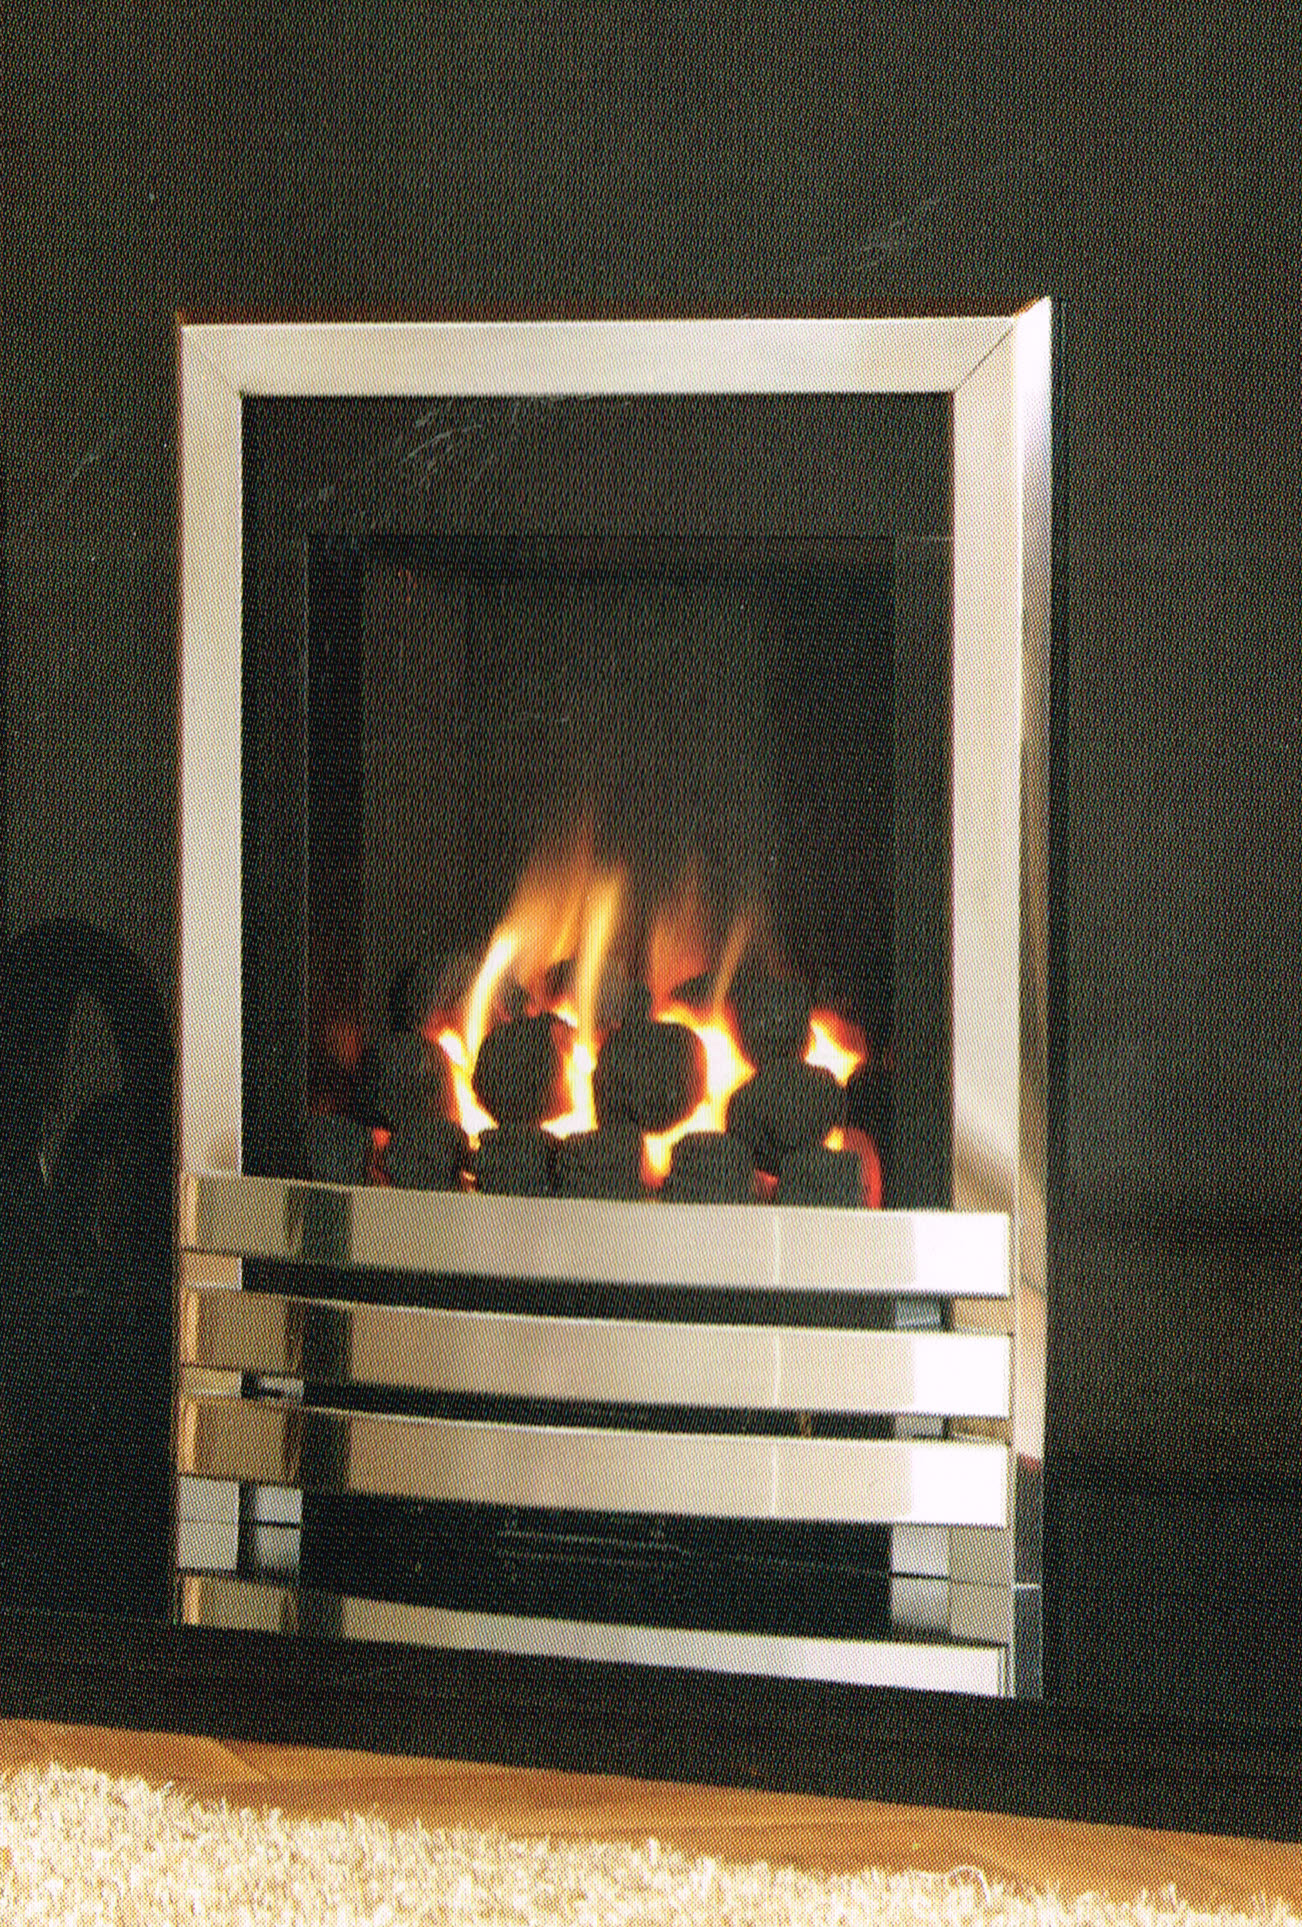 18 newman fireplaces ltd welcome to shoreham fireplaces centre